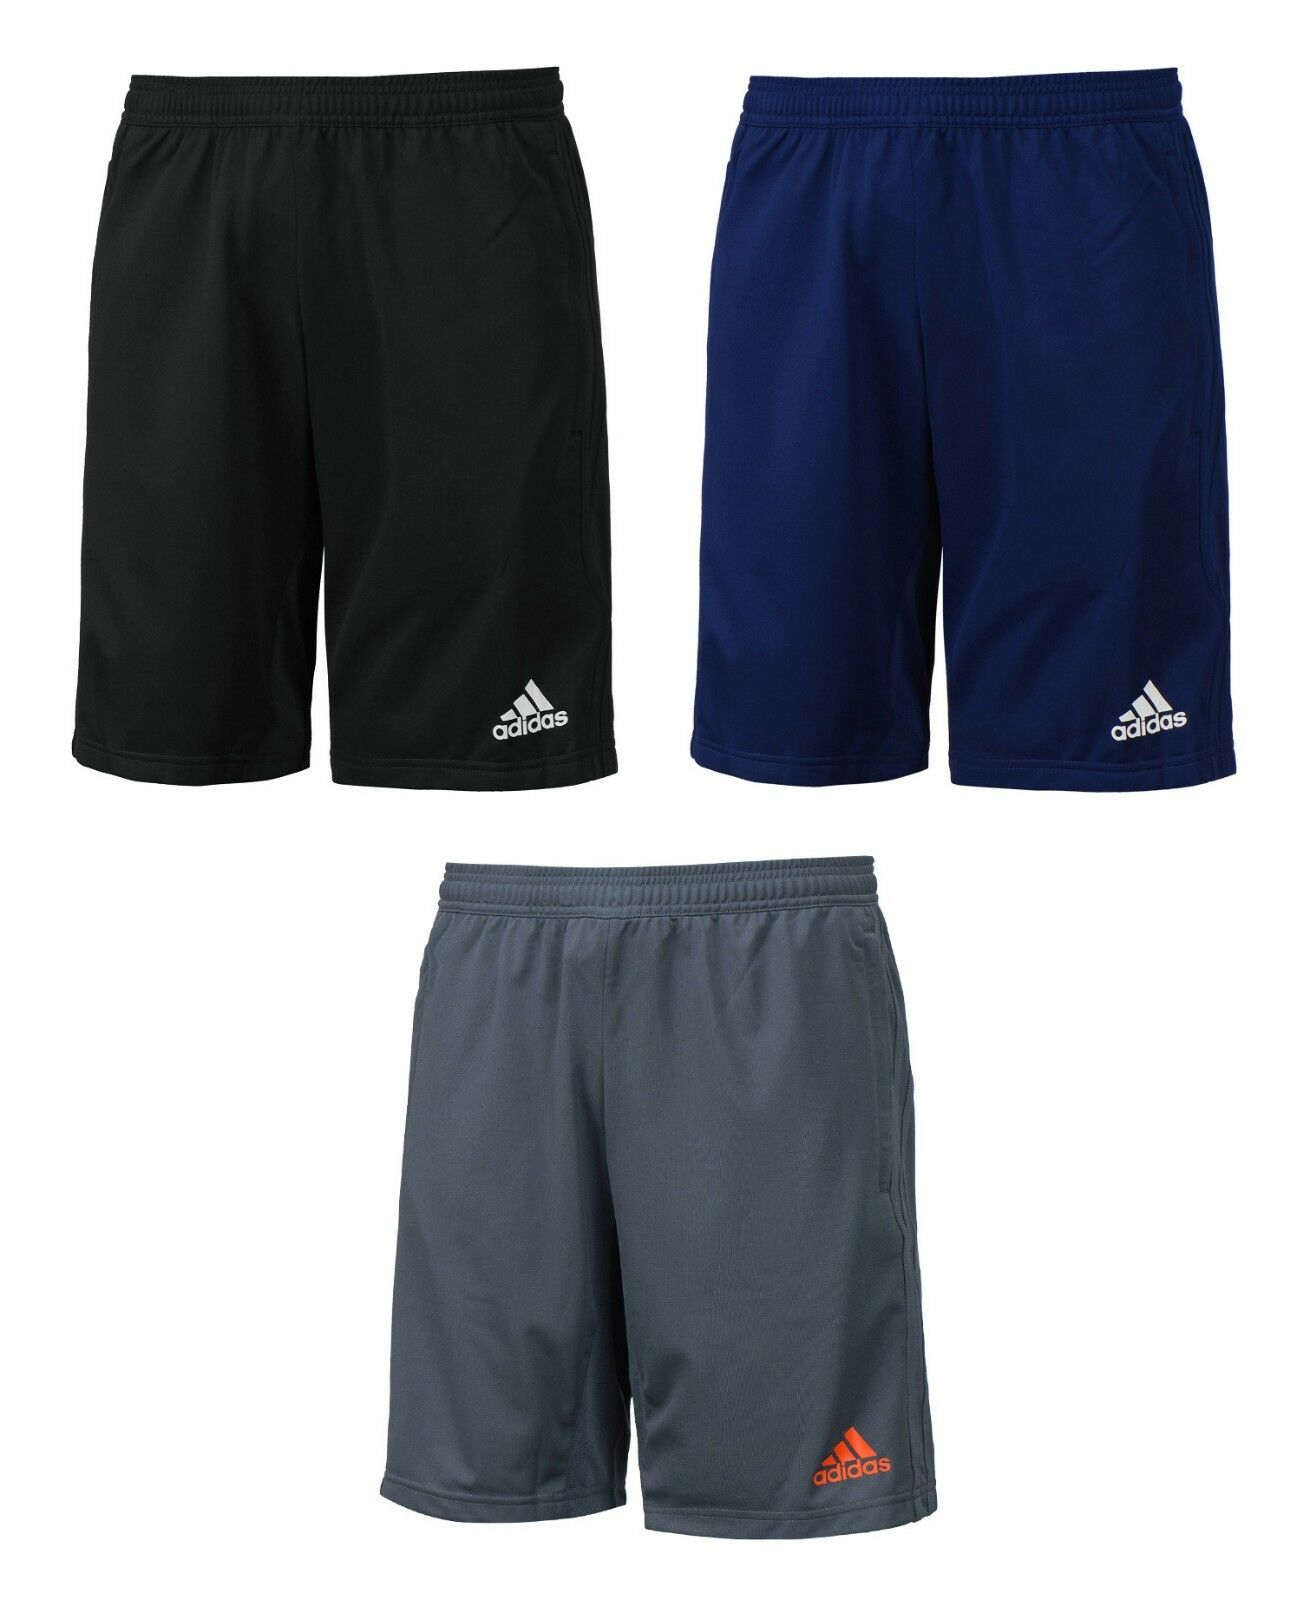 Adidas Condivo 18 Training Shorts (CV8381) Running Soccer Football Short Pants